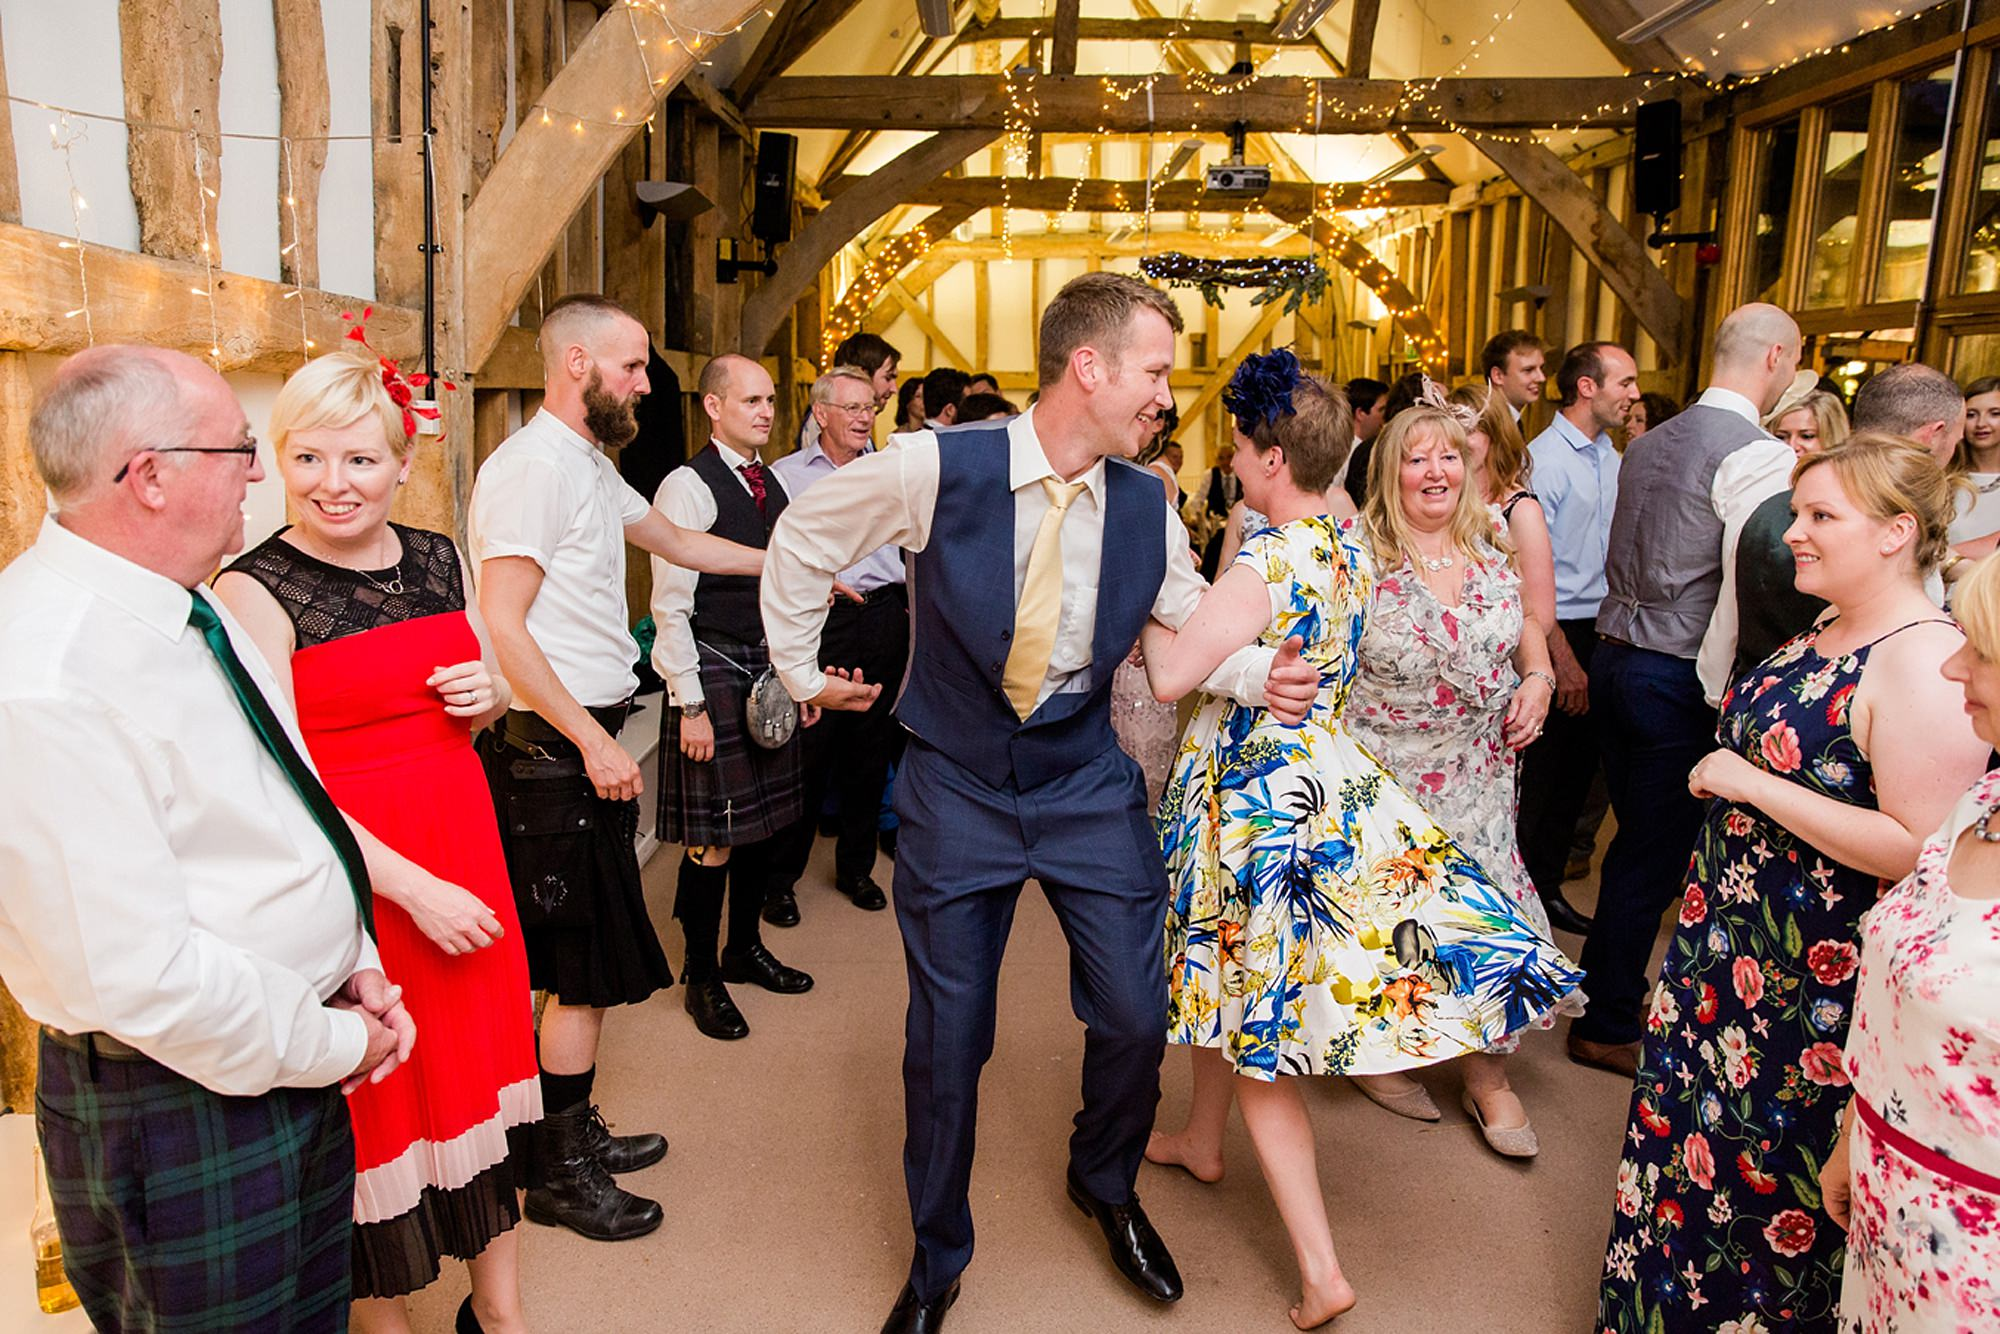 Outdoor humanist wedding photography fun guest ceilidh